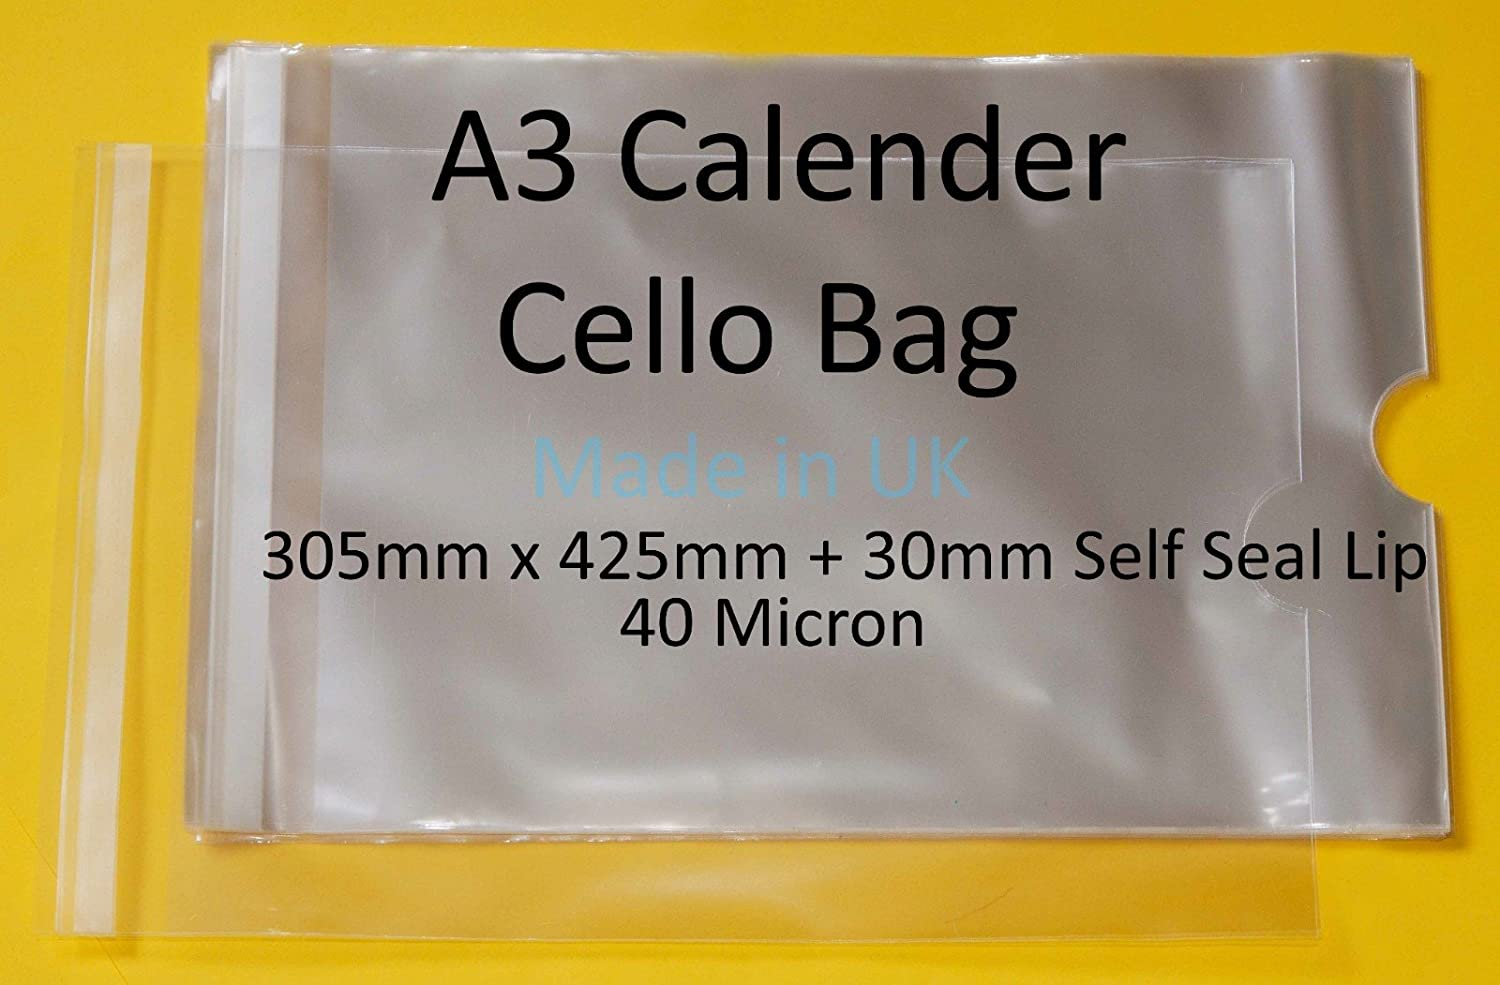 40 Micron Pack of 25-8 x 6 161mm x 203mm 30mm Self Seal Flap Mounted Photograph Cellophane Display Bags